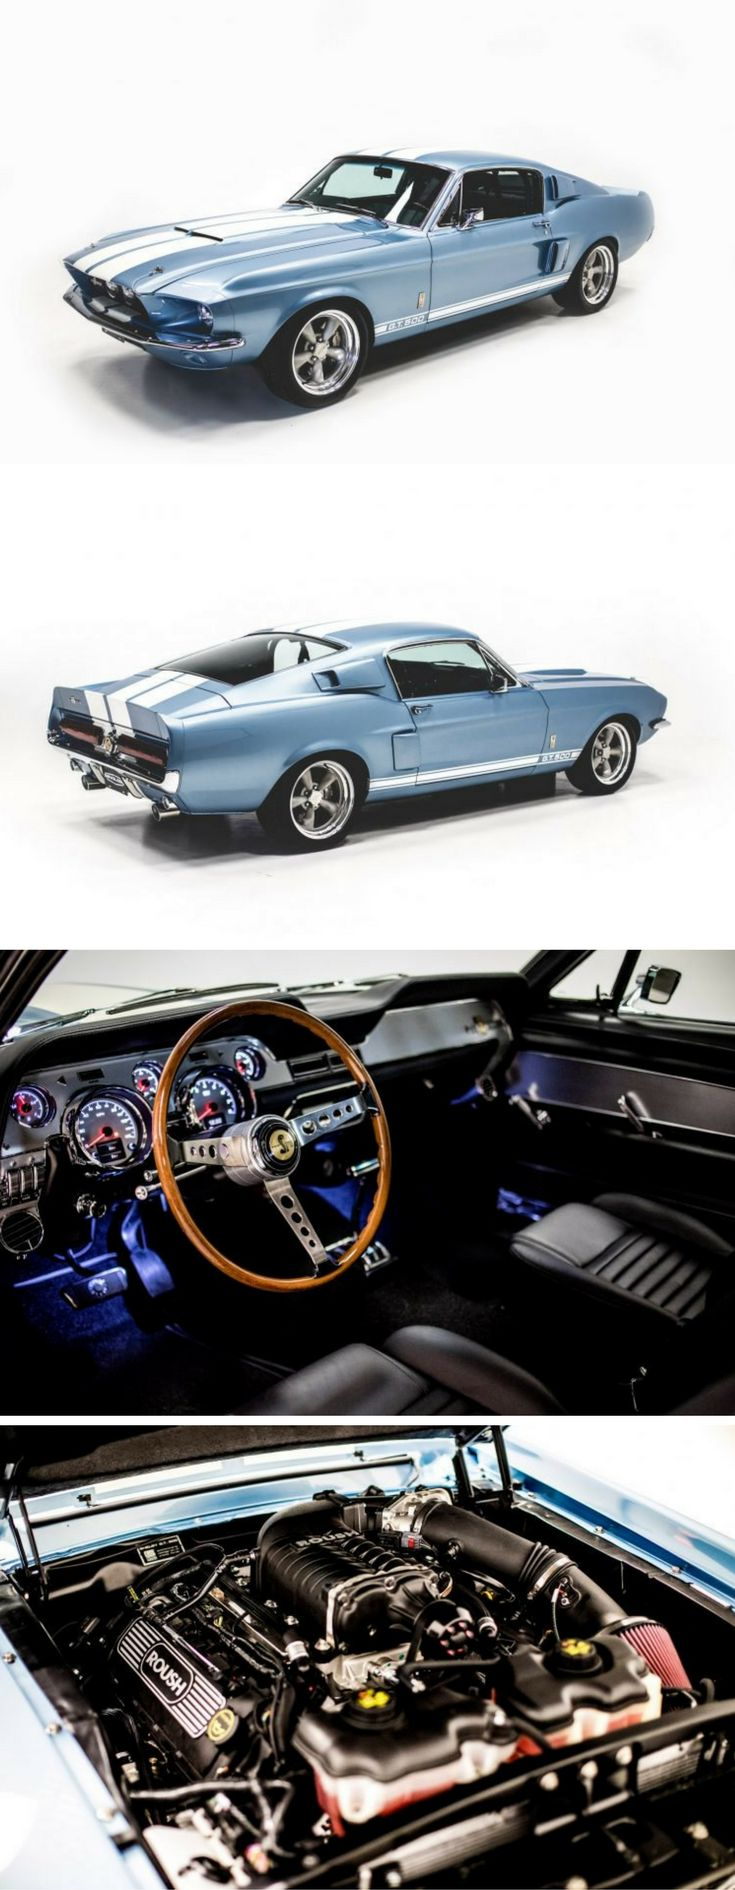 Would You Spend $219,000 on a Gorgeous Modern 600 HP Reproduction of a 1967 Shelby GT500?